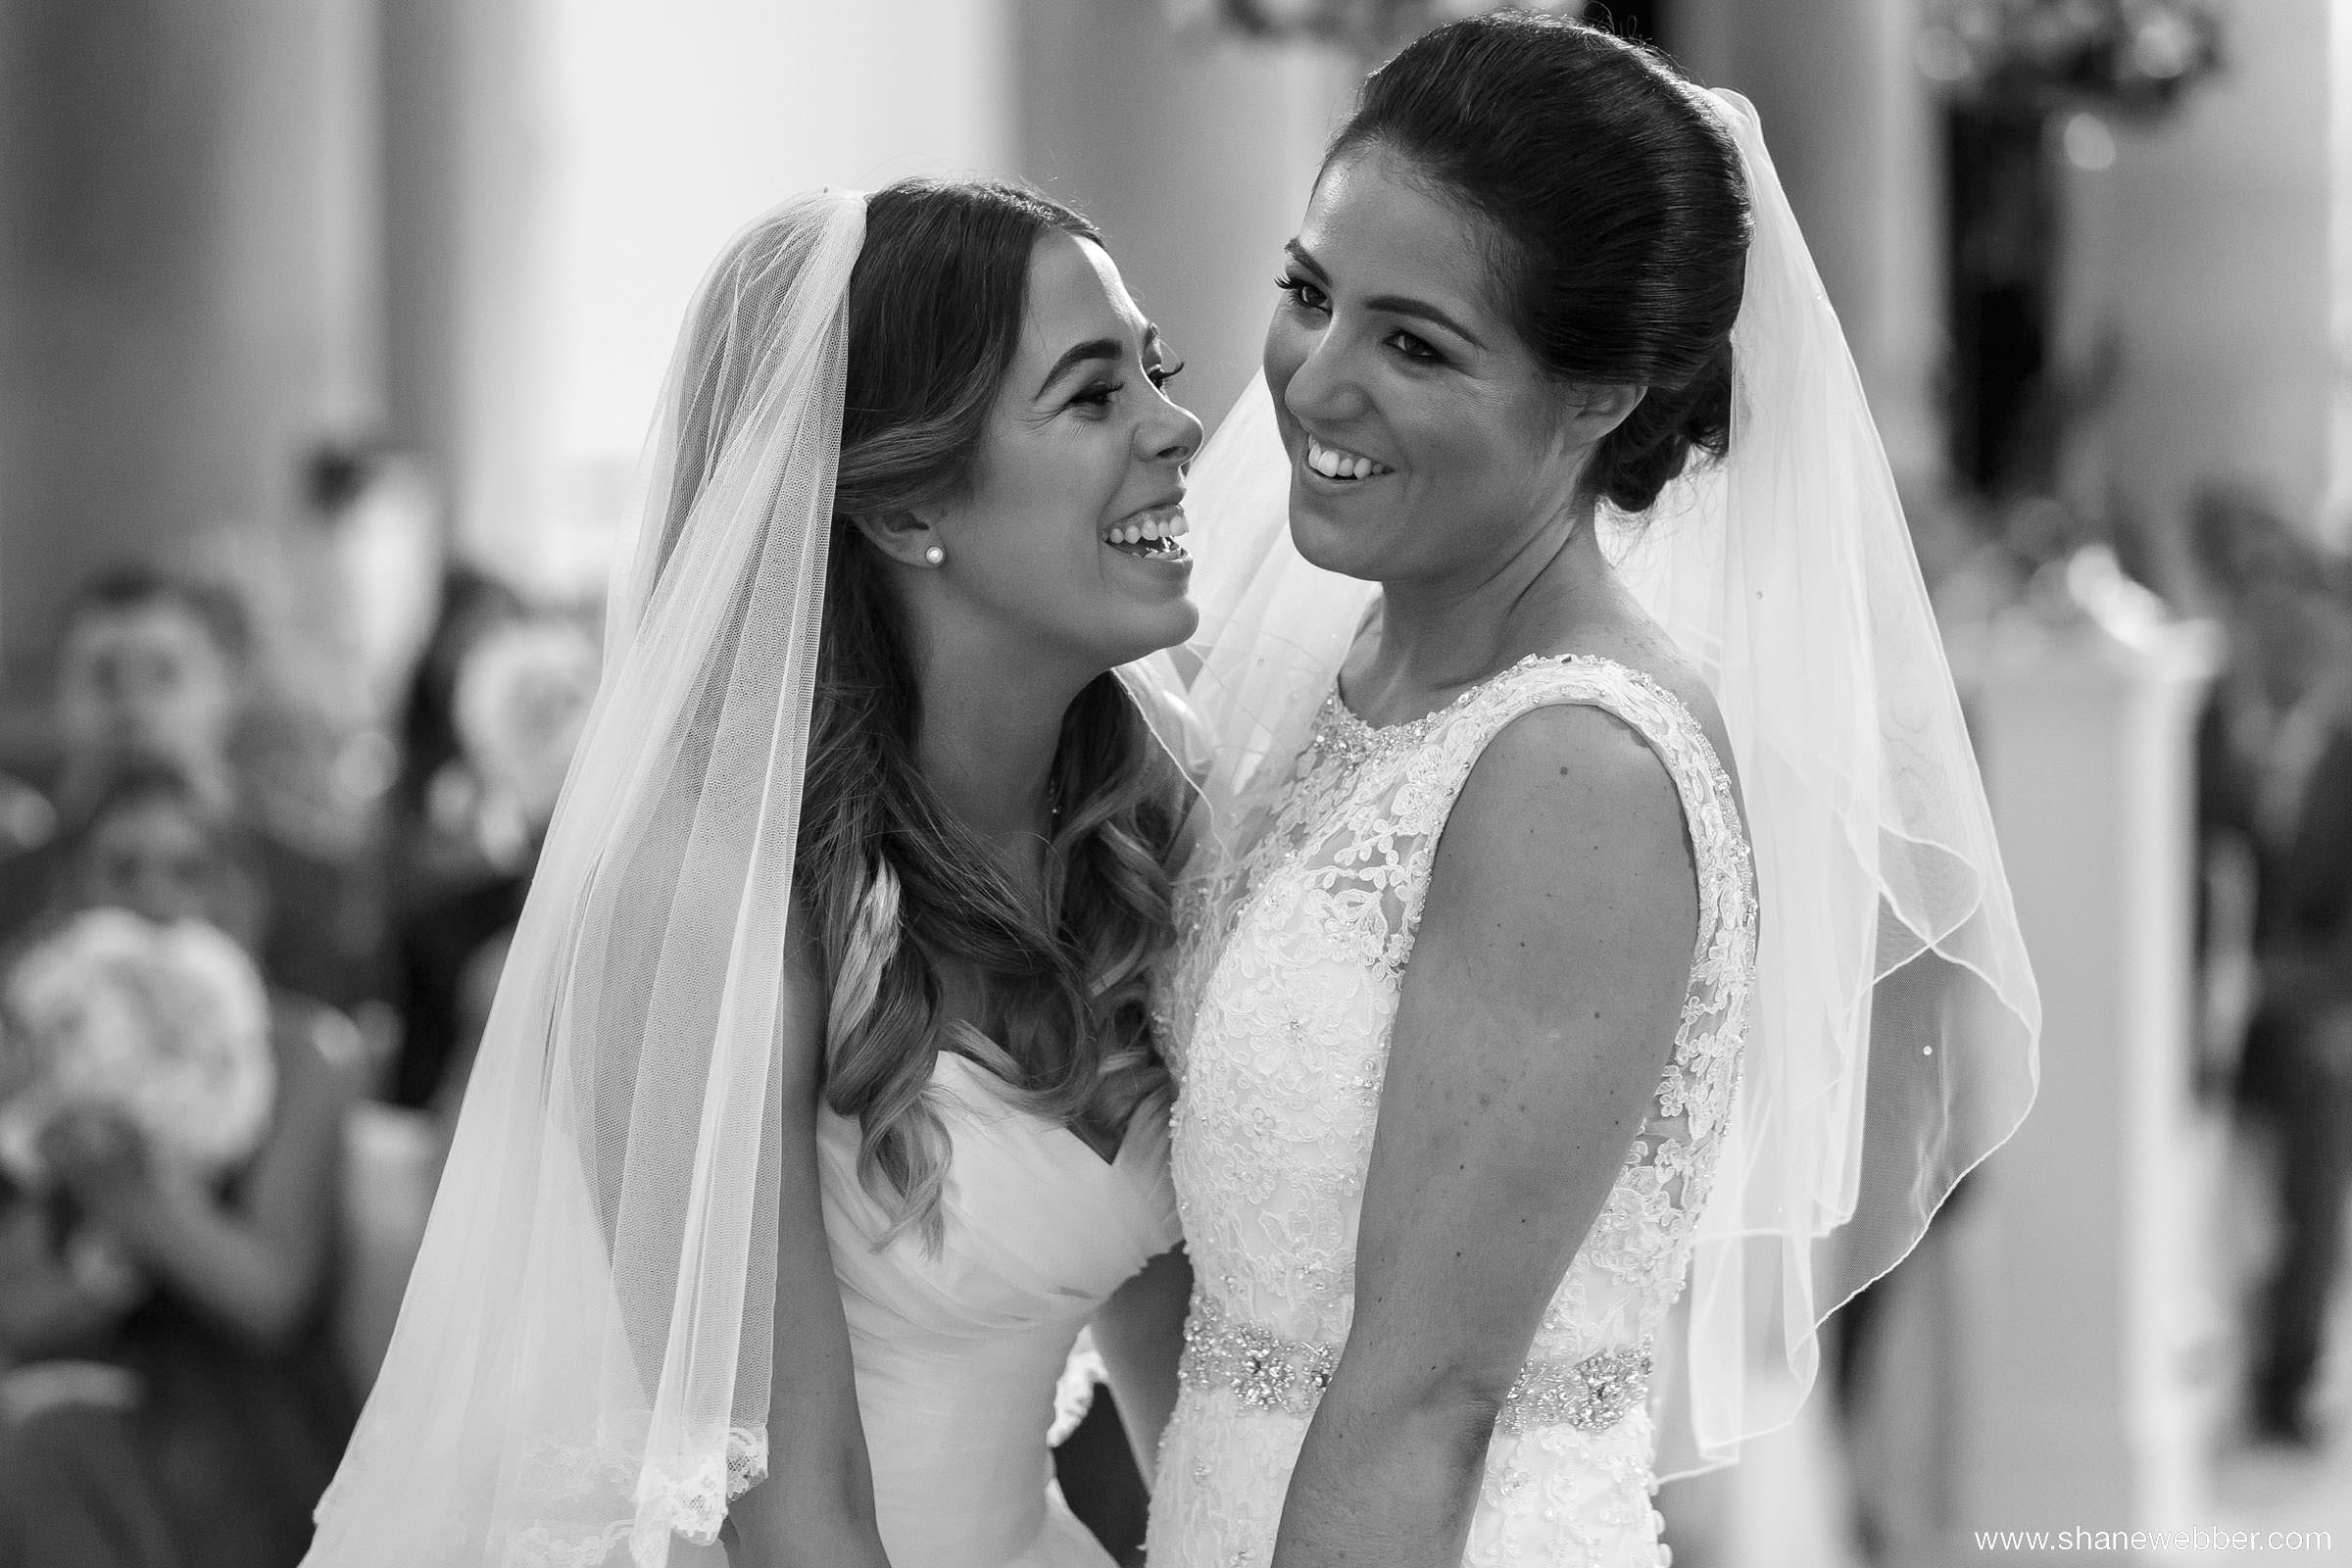 Beautiful photo of two brides